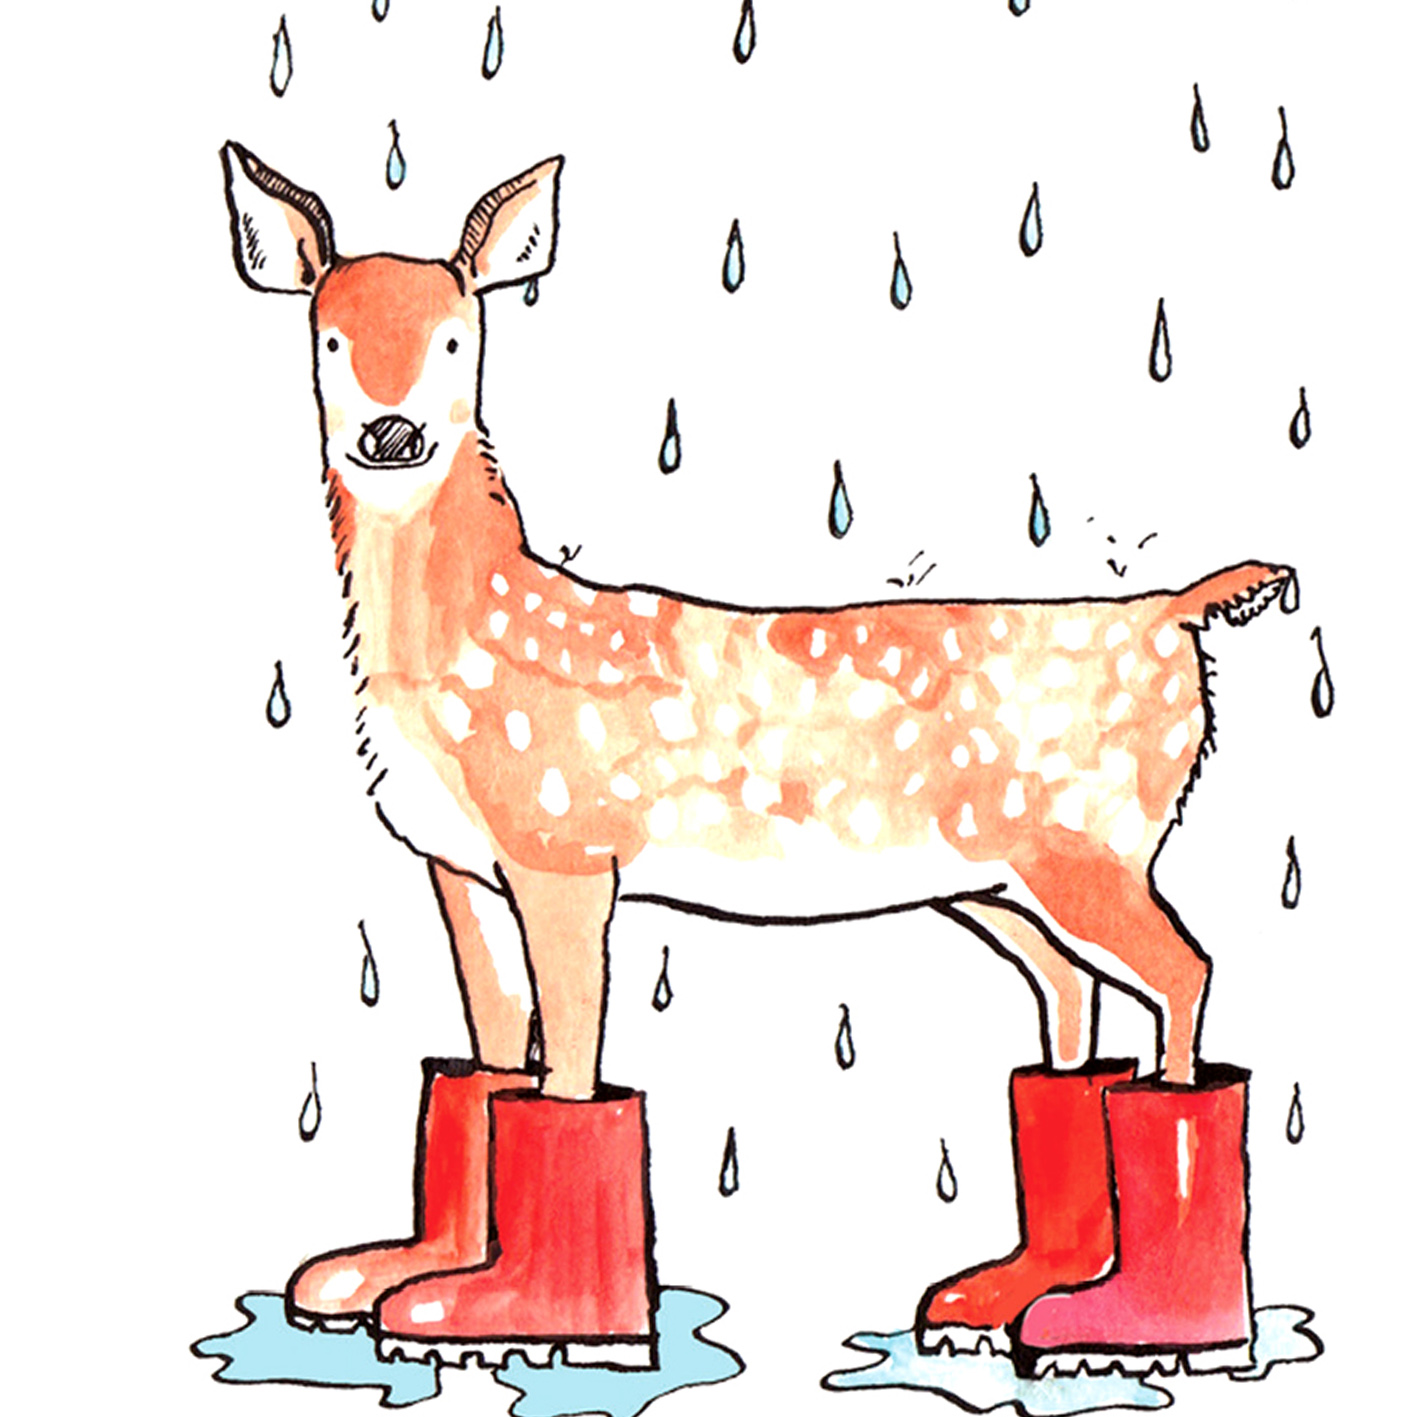 Rain-Deer_-Reindeer-Christmas-card-with-fun-reindeer-pun_CH06_CU